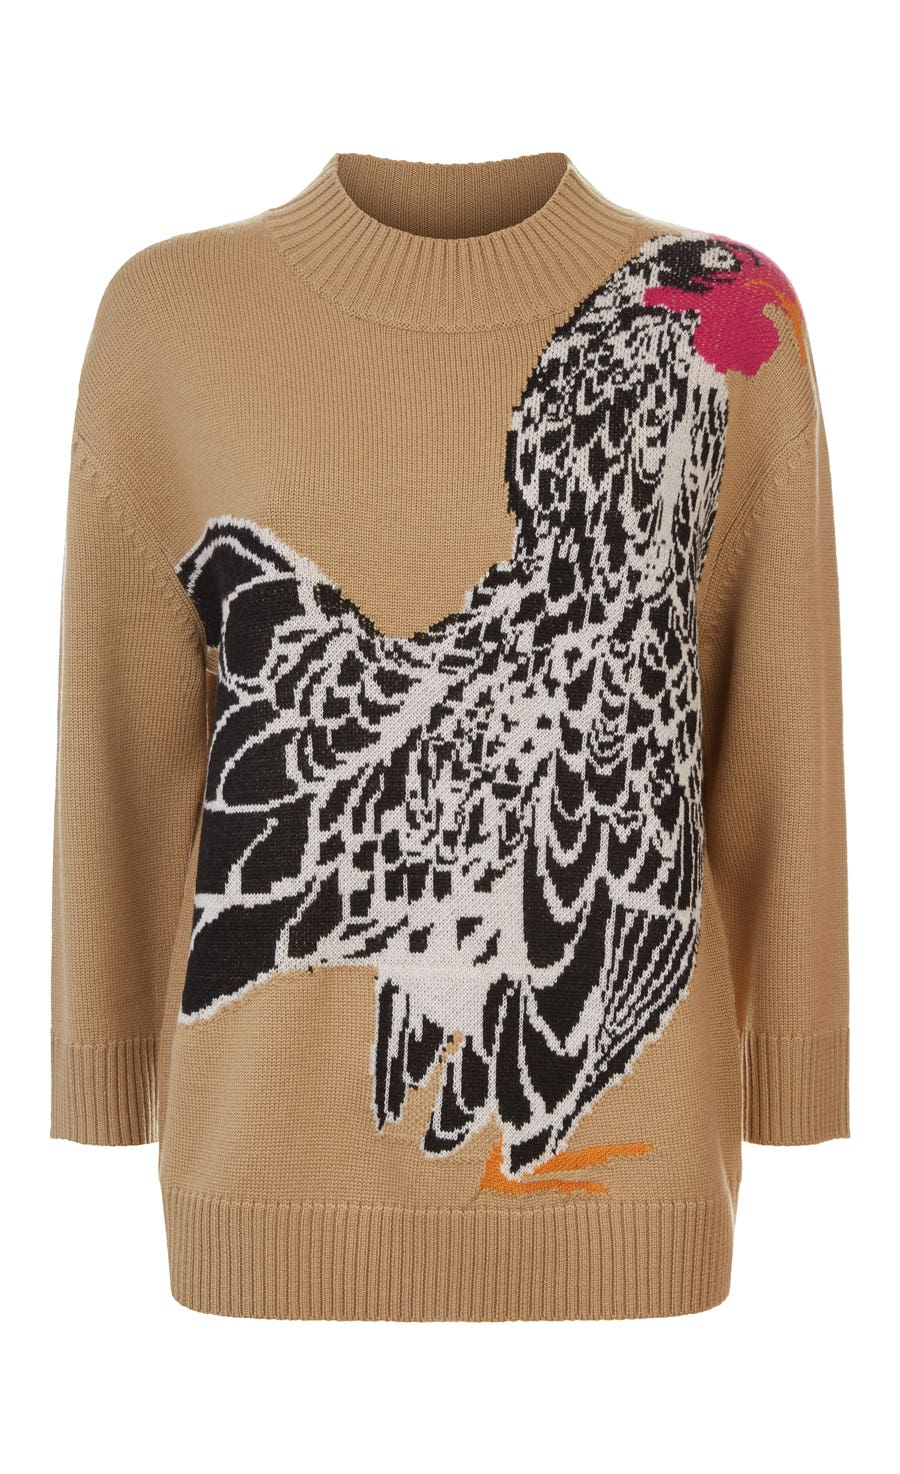 Bird Jacquard Knit Jumper, Flax Mix